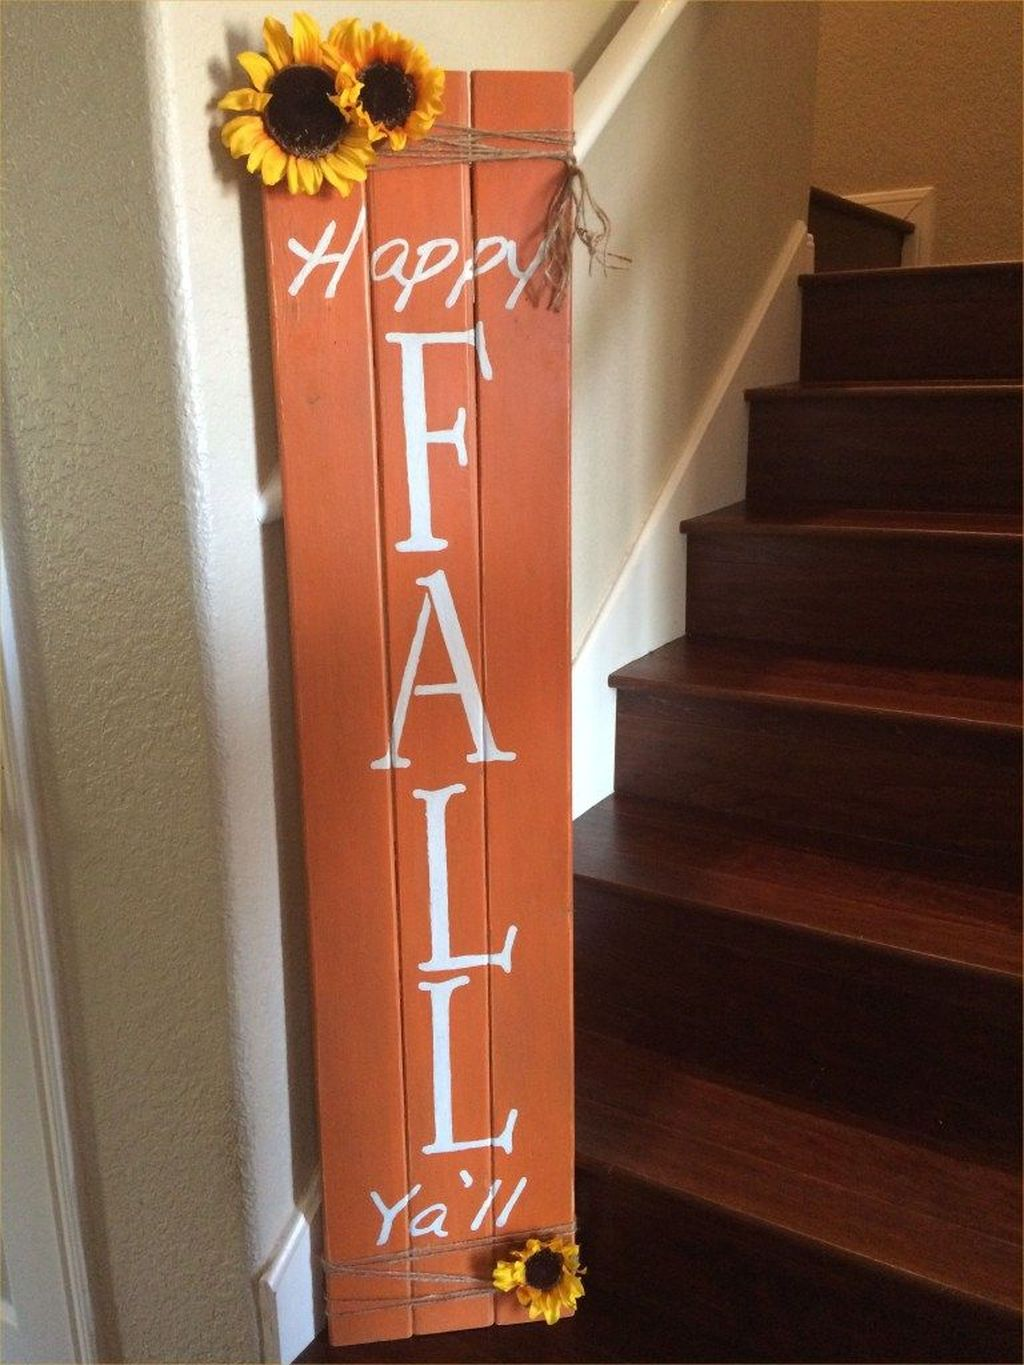 Inspiring Fall Pallet Signs Design Ideas For Your Home Decor 16